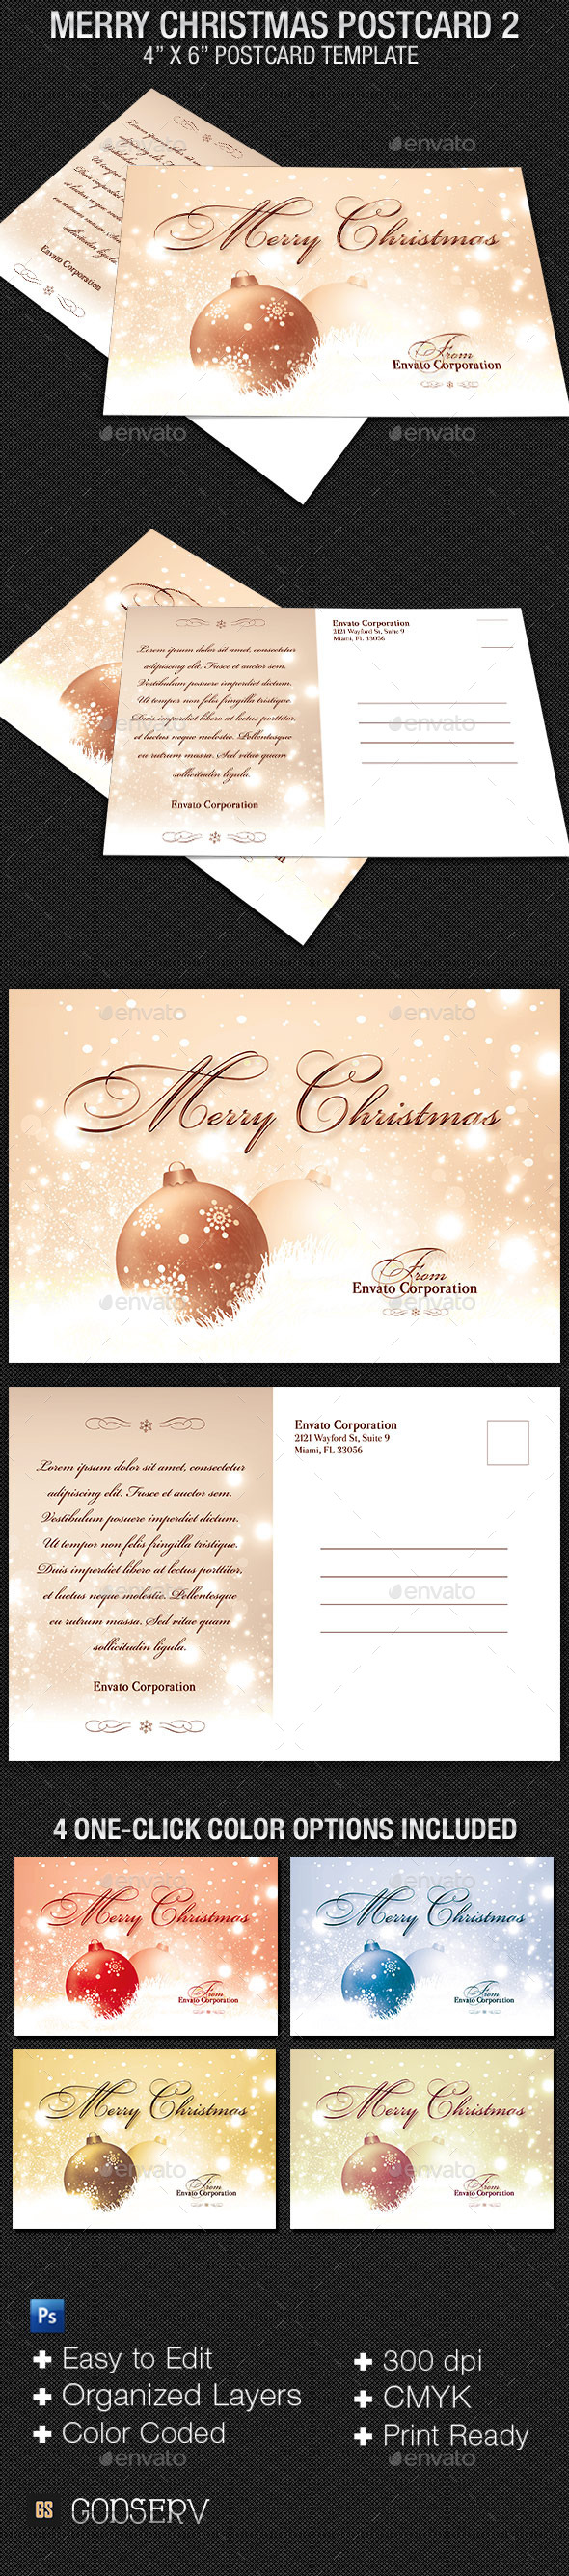 Merry Christmas Postcard Template V2 - Holidays Events